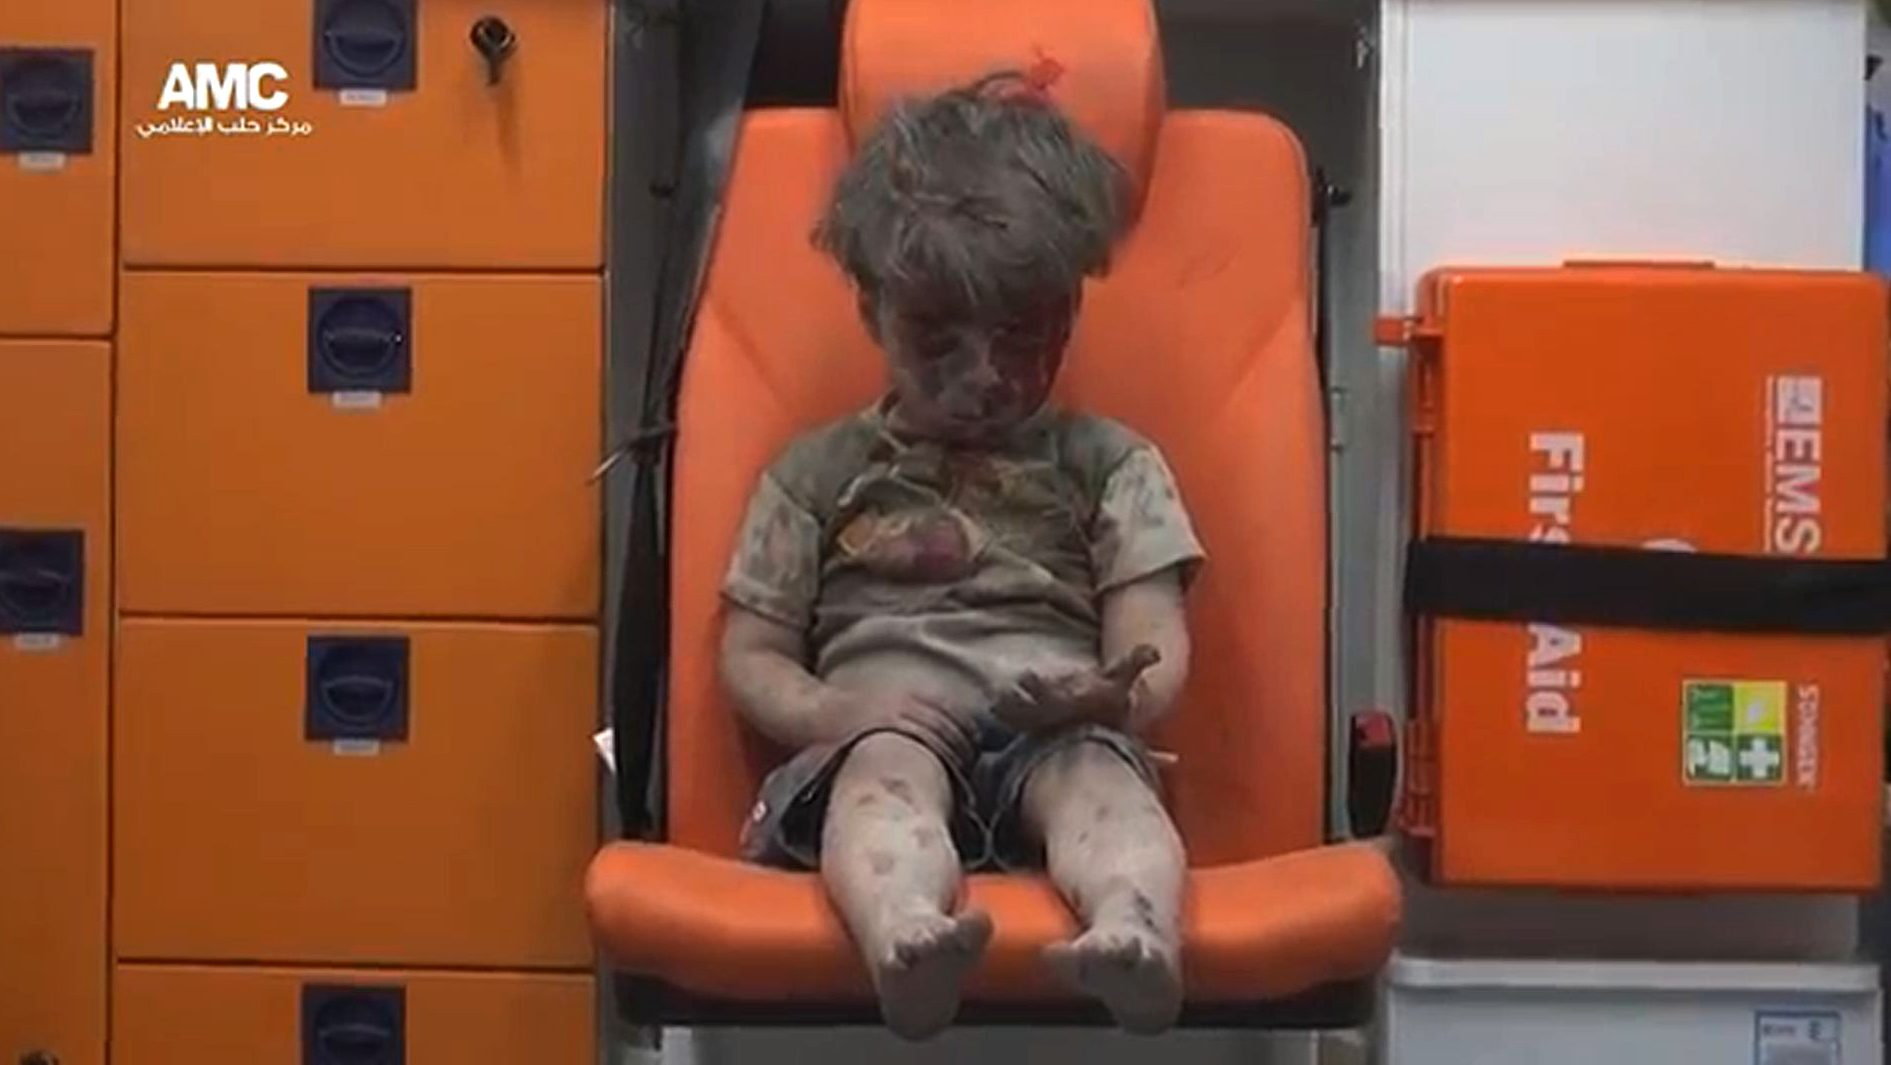 "An image grab taken from a video uploaded by the Syrian opposition's activist group Aleppo Media Centre (AMC) on August 17, 2016 is said to show Omran, a four-year-old Syrian boy covered in dust and blood, looking at his hand in shock as he sits in an ambulance after being rescued from the rubble of a building hit by an air strike in the rebel-held Qaterji neighbourhood of the northern Syrian city of Aleppo. / AFP PHOTO / AMC / HO / === RESTRICTED TO EDITORIAL USE - MANDATORY CREDIT ""AFP PHOTO / HO / AMC "" - NO MARKETING NO ADVERTISING CAMPAIGNS - DISTRIBUTED AS A SERVICE TO CLIENTS FROM ALTERNATIVE SOURCES, AFP IS NOT RESPONSIBLE FOR ANY DIGITAL ALTERATIONS TO THE PICTURE'S EDITORIAL CONTENT, DATE AND LOCATION WHICH CANNOT BE INDEPENDENTLY VERIFIED ===   /"